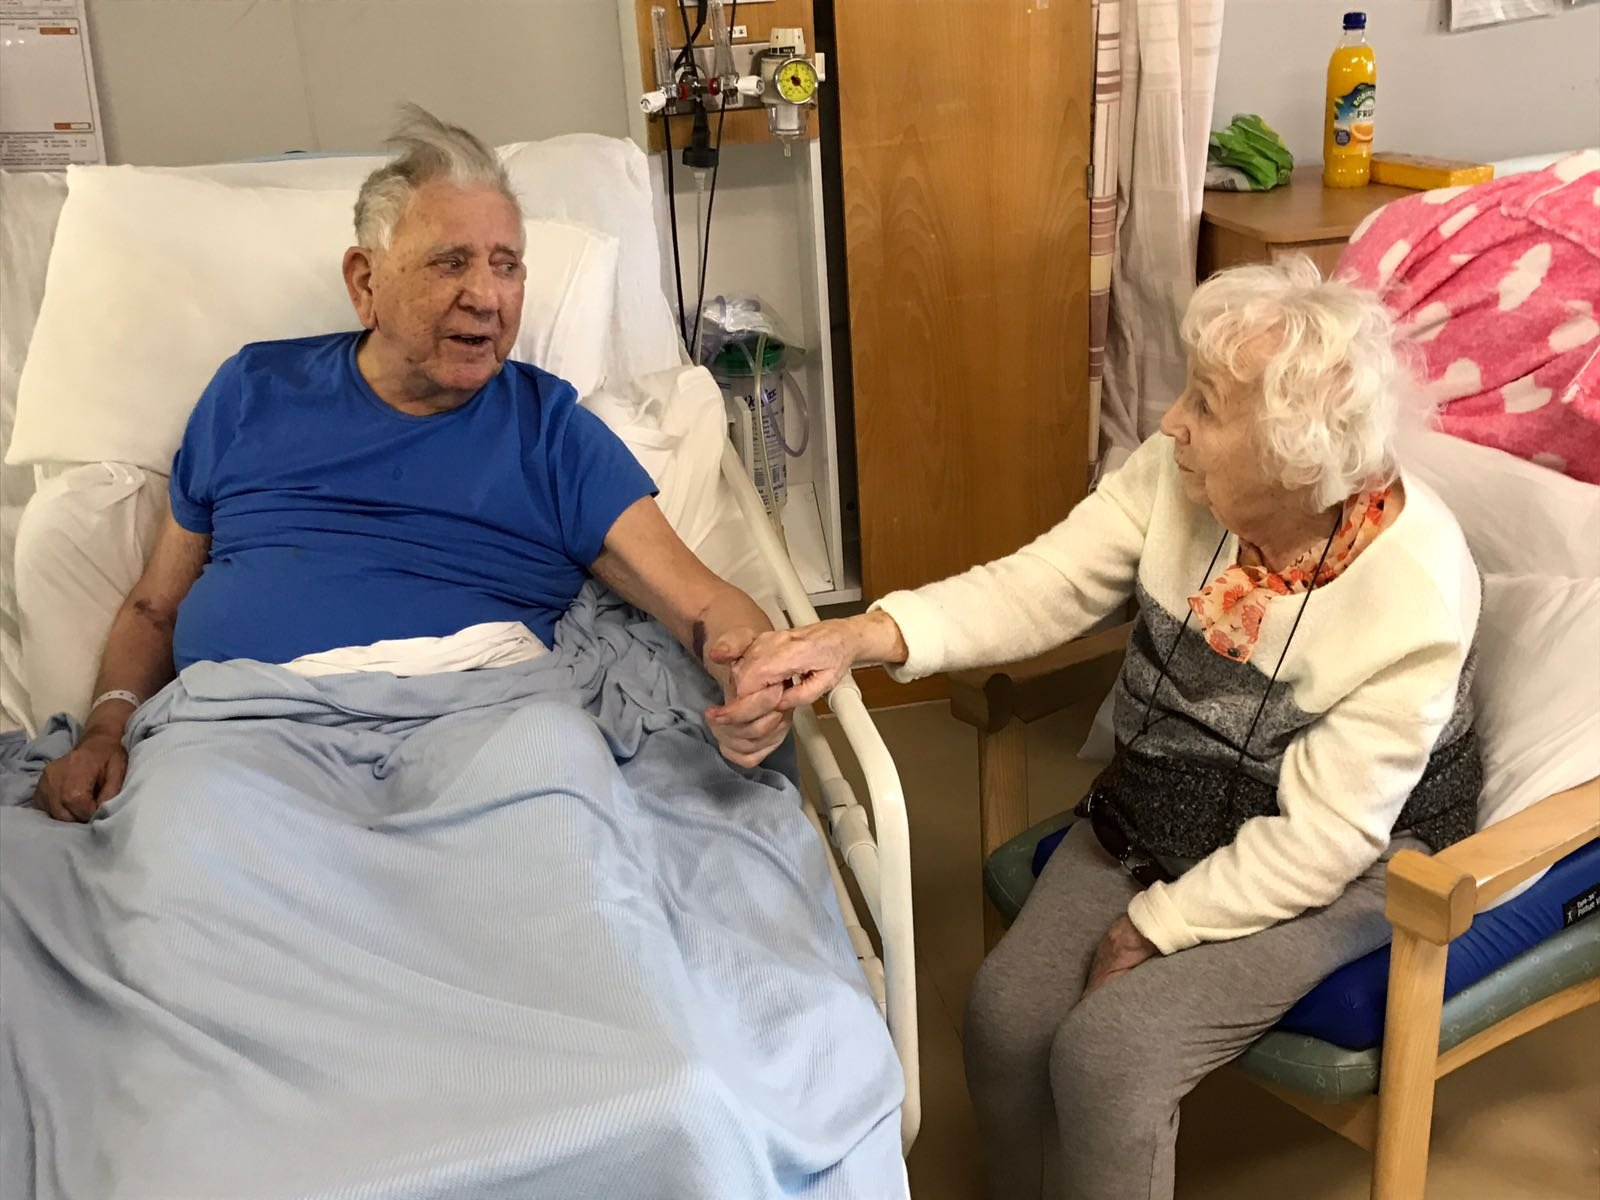 fee for online £75 per image and Fee For Print £150 per image Peggy and Peter White from Erskine. Staff put them in the same ward together at the RAH